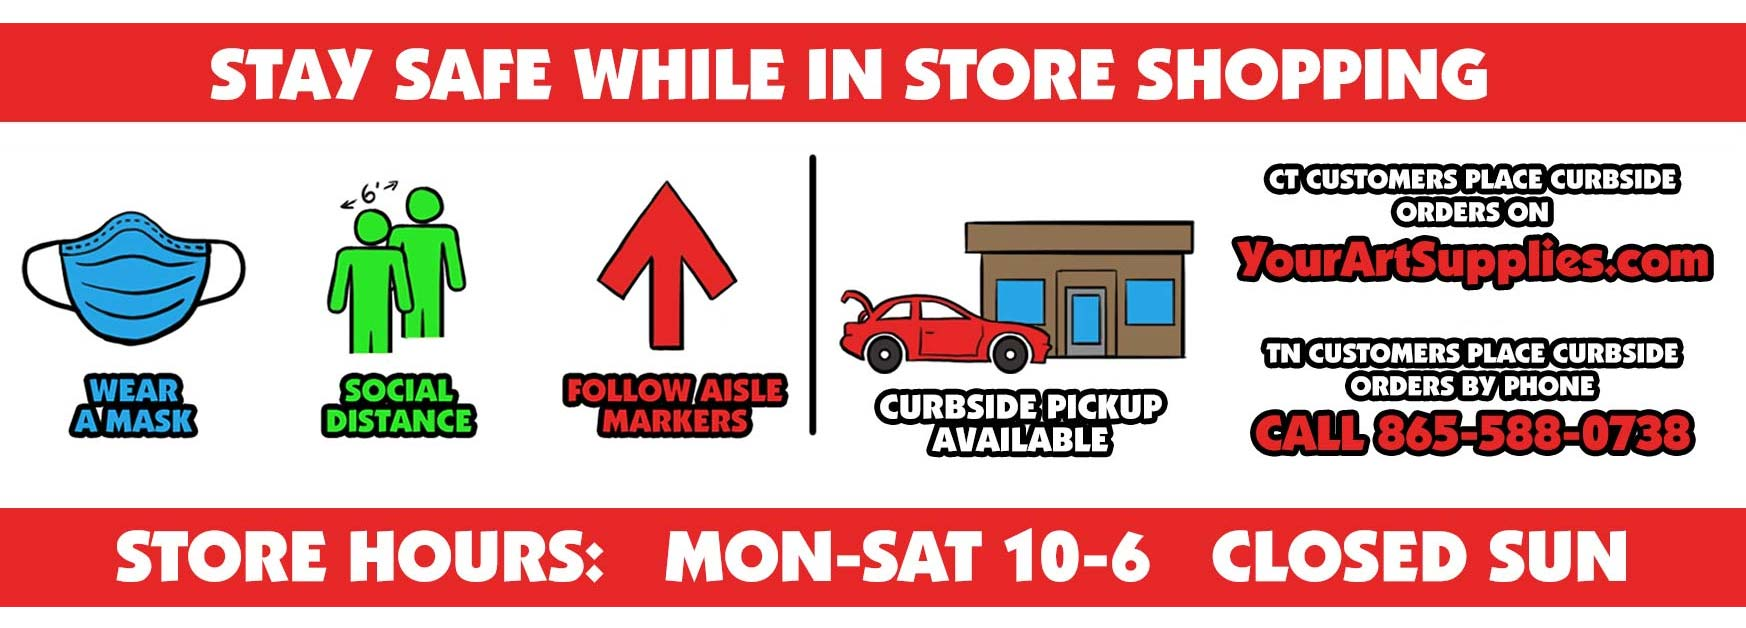 Order online for curbside pickup on YourArtSupplies.com